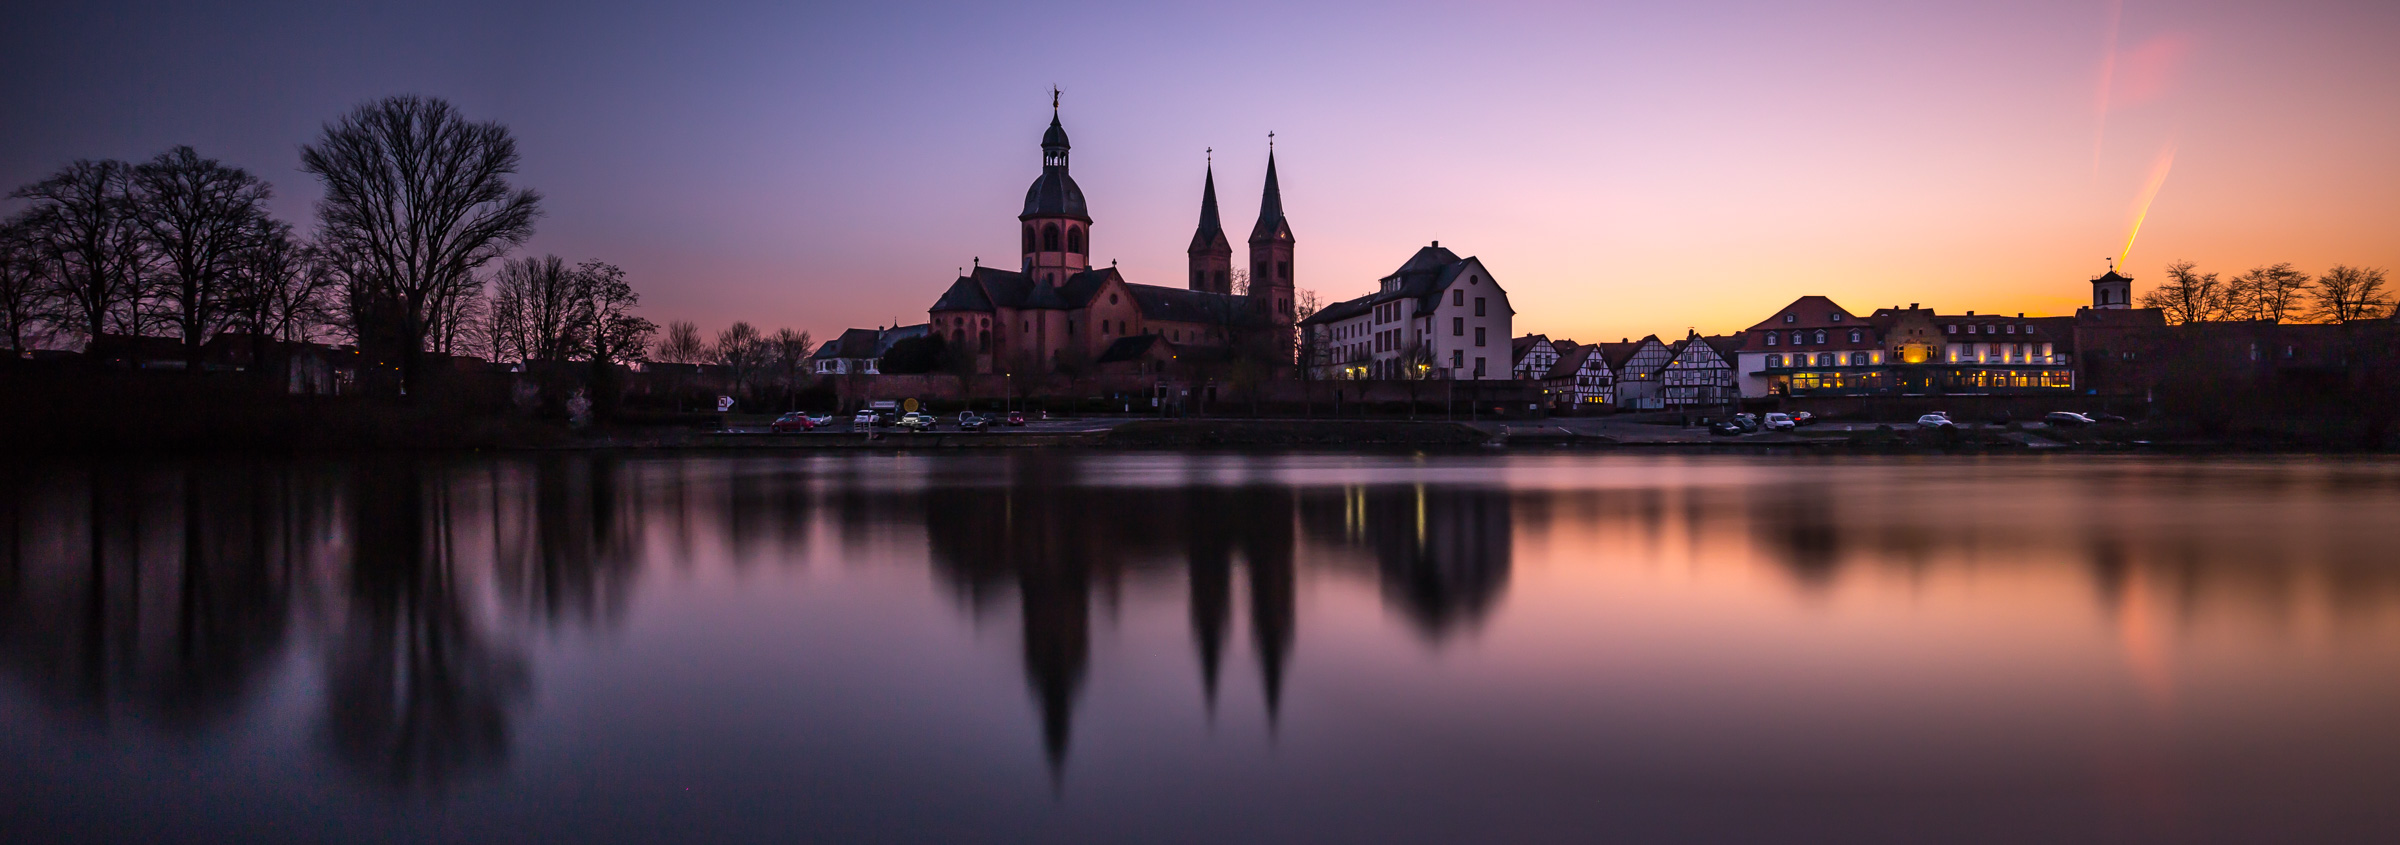 Sunset at Seligenstadt, Germany.